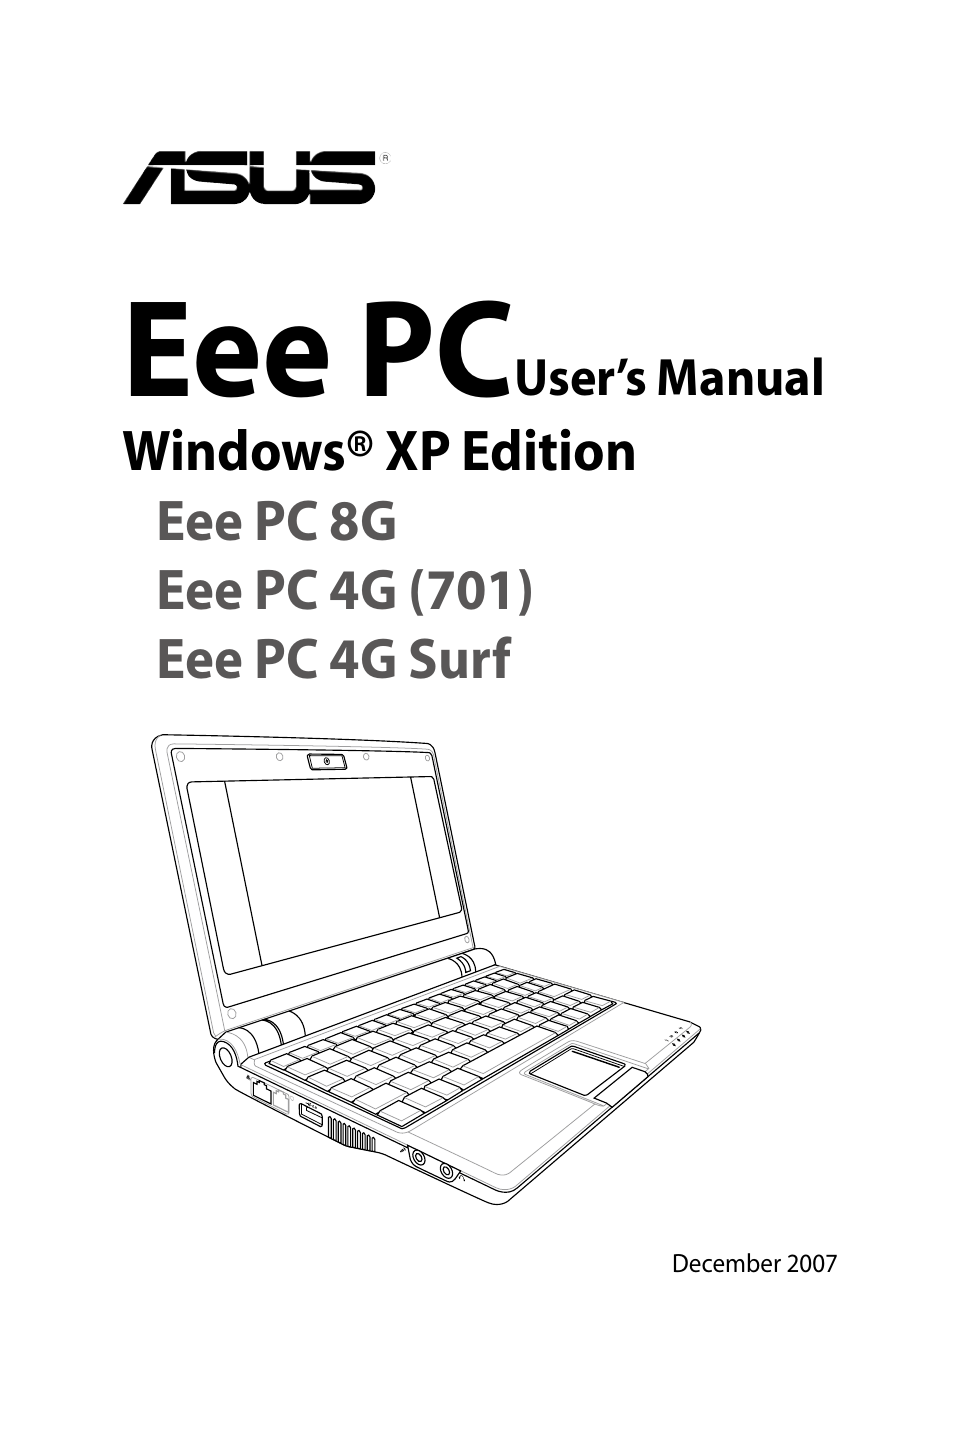 asus eee pc 8g xp user manual 74 pages also for eee pc 4g xp rh manualsdir com manual netbook asus eee pc 4g asus eee pc 701 4g manual